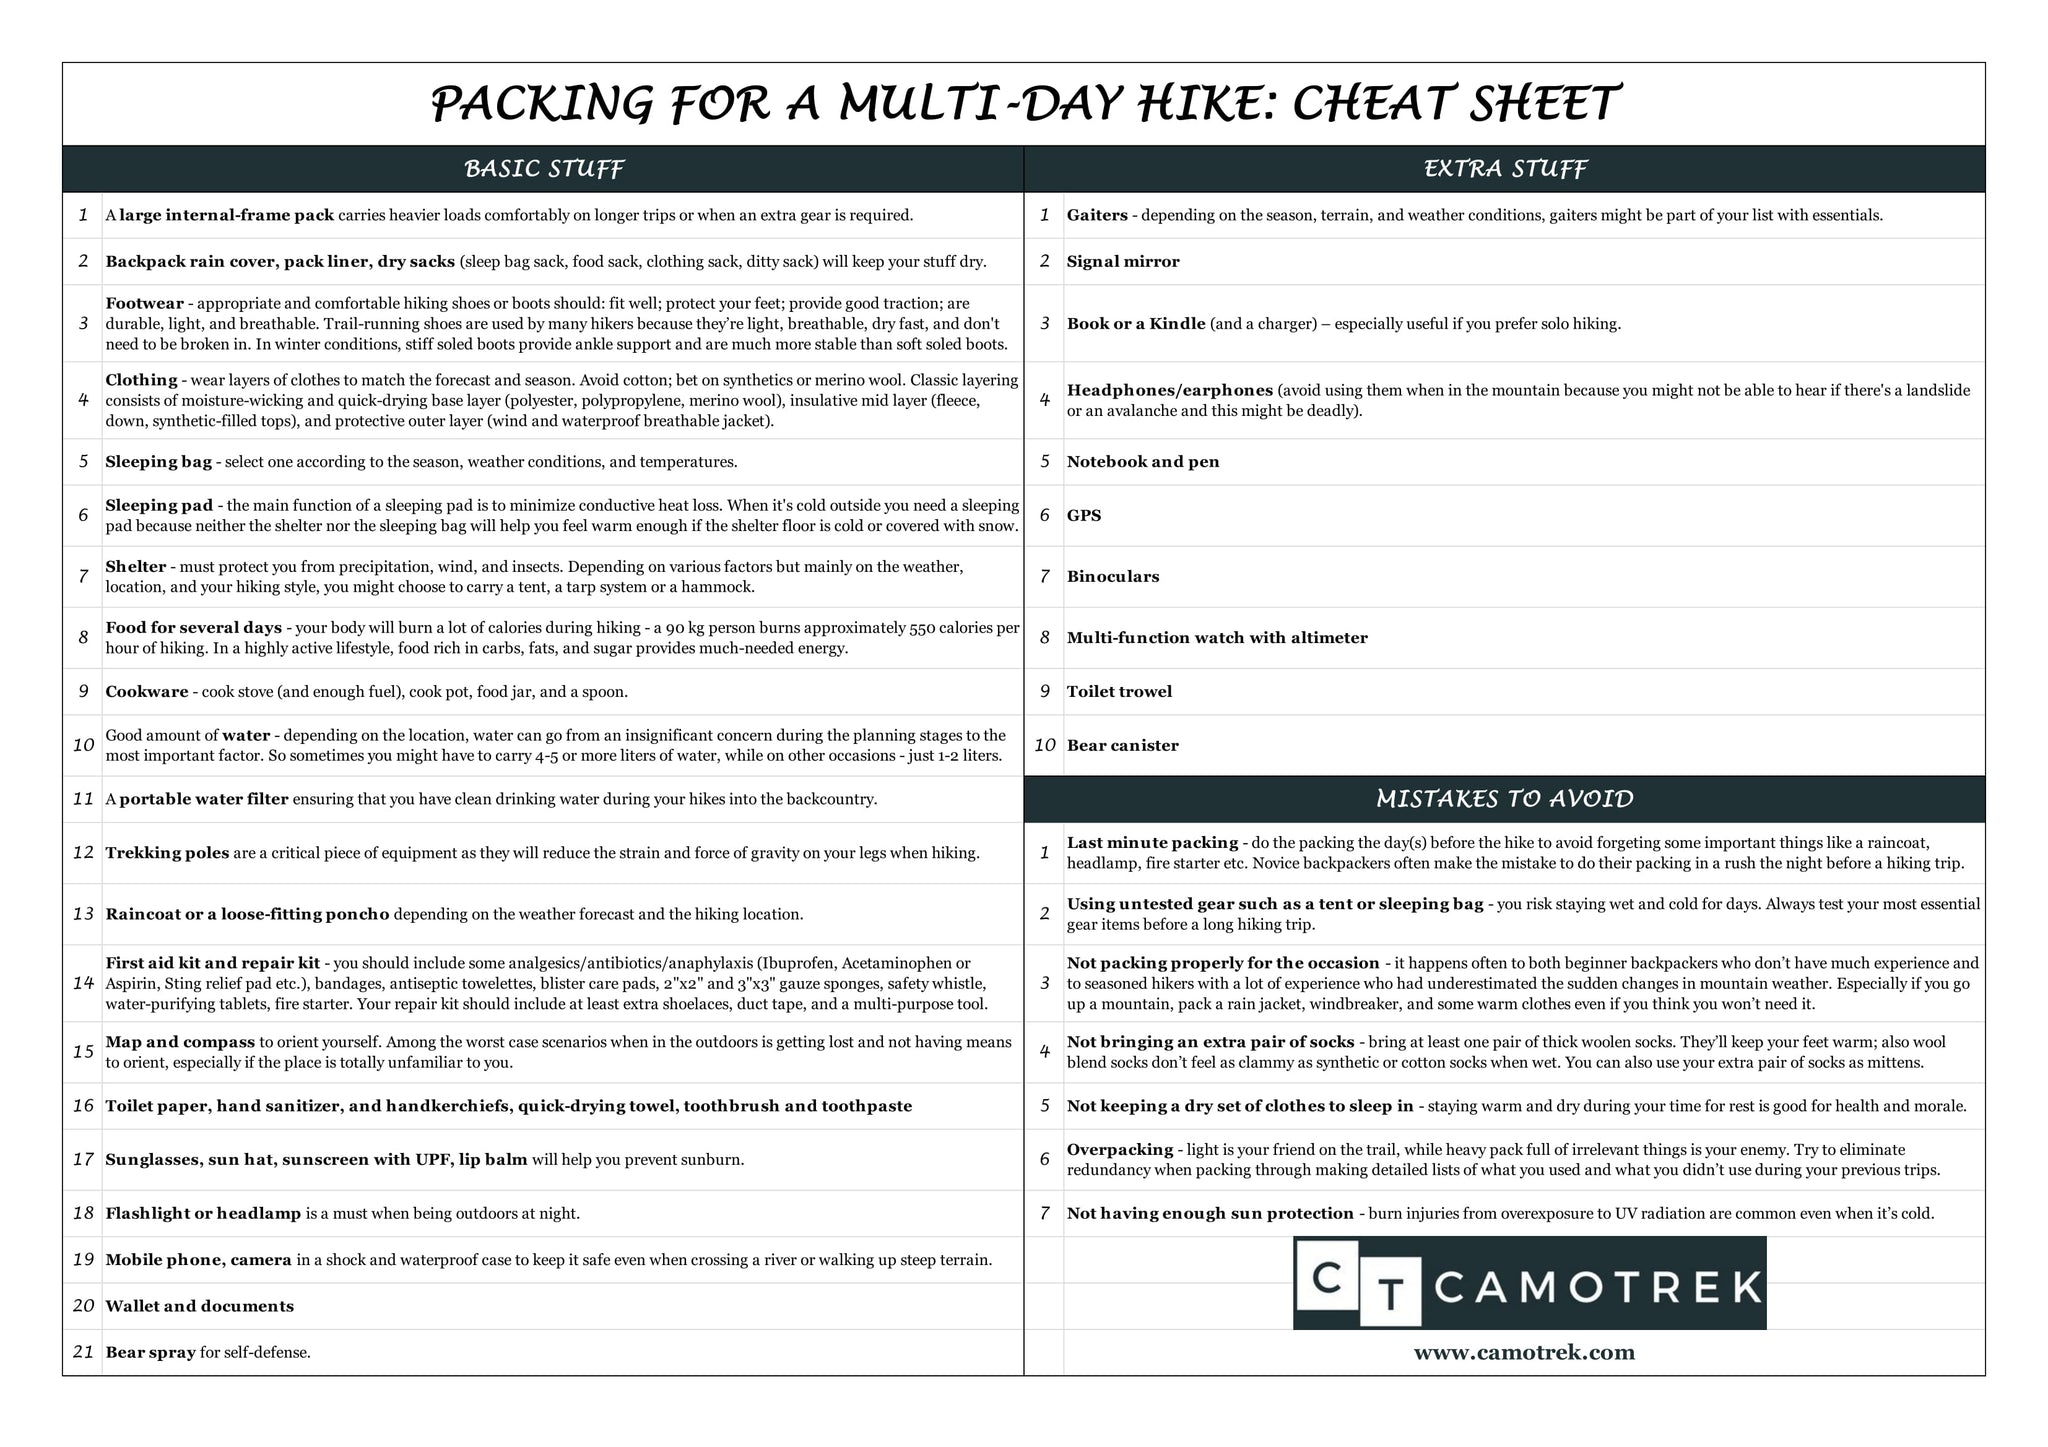 Packing for a Multi-Day Hike: Checklist